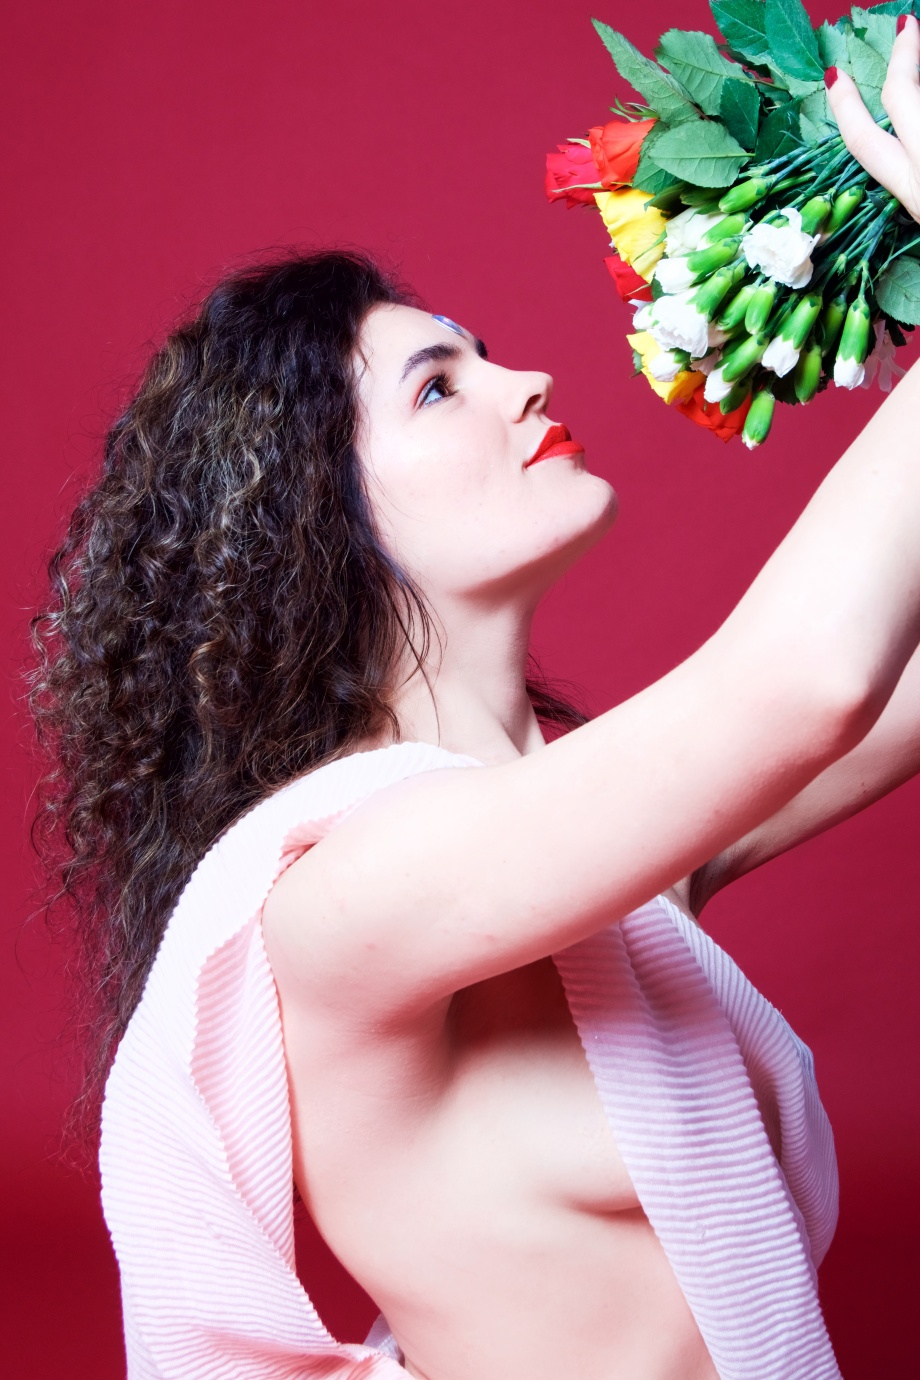 red, flowers, topless, implied, studio, femininity, hair, cork, models, ireland